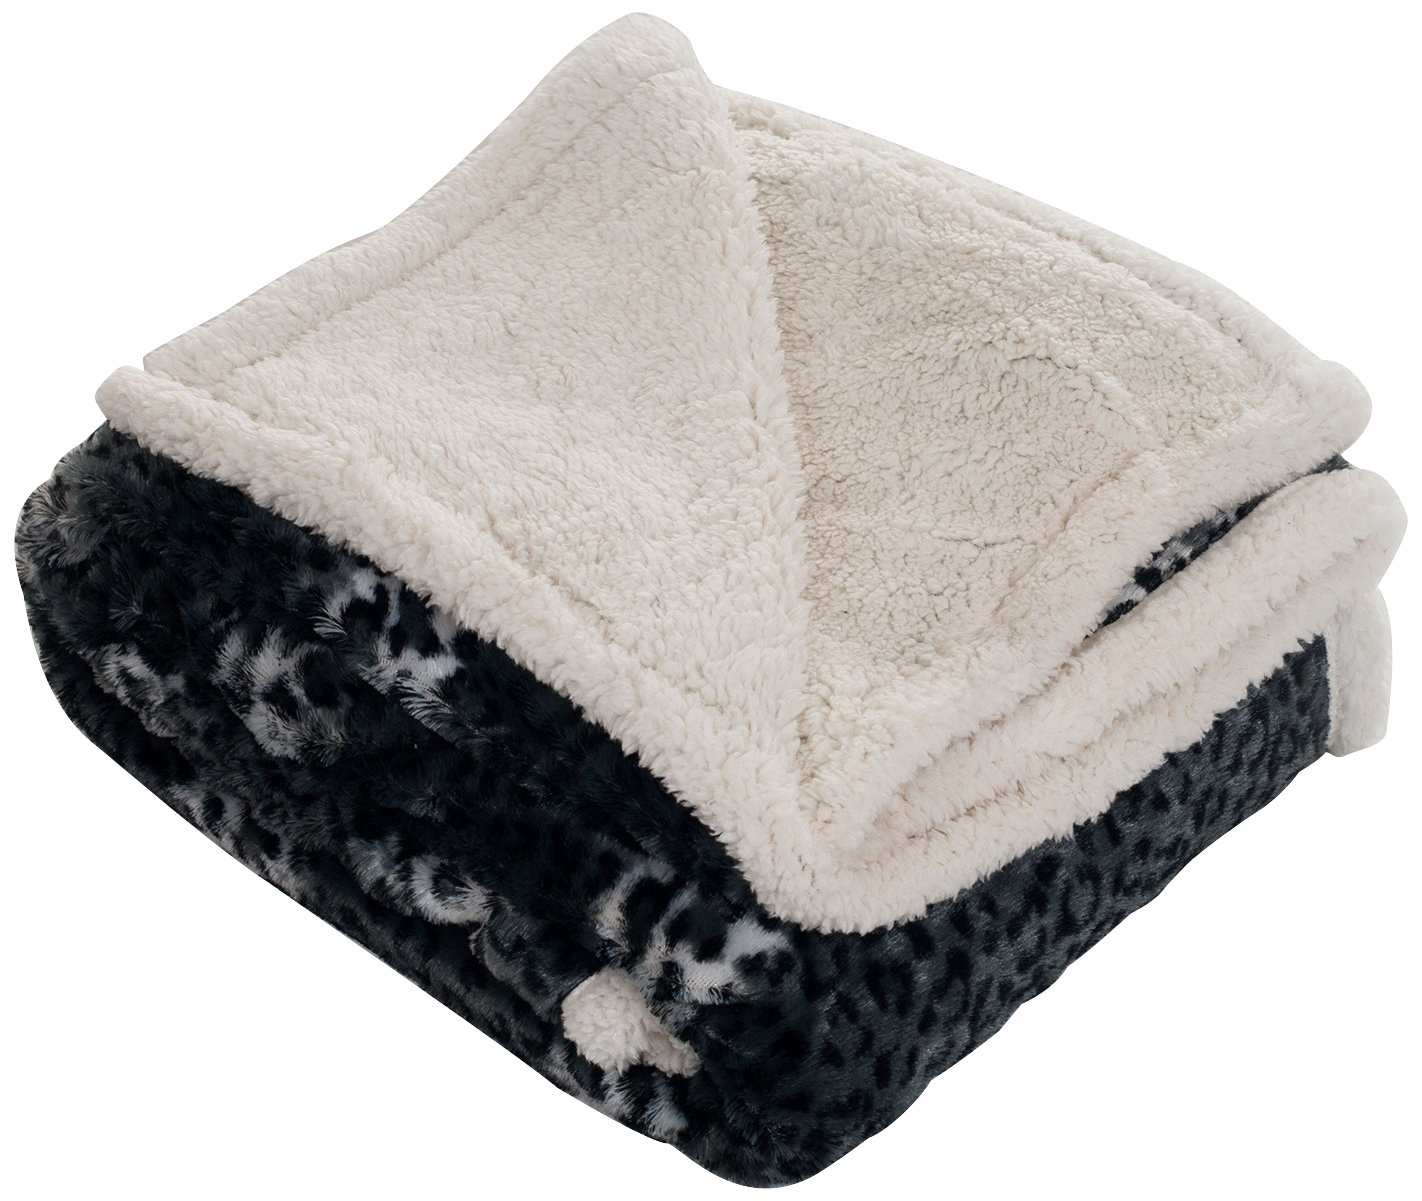 Lavish Home Throw Blanket, Fleece/Sherpa, Cheetah